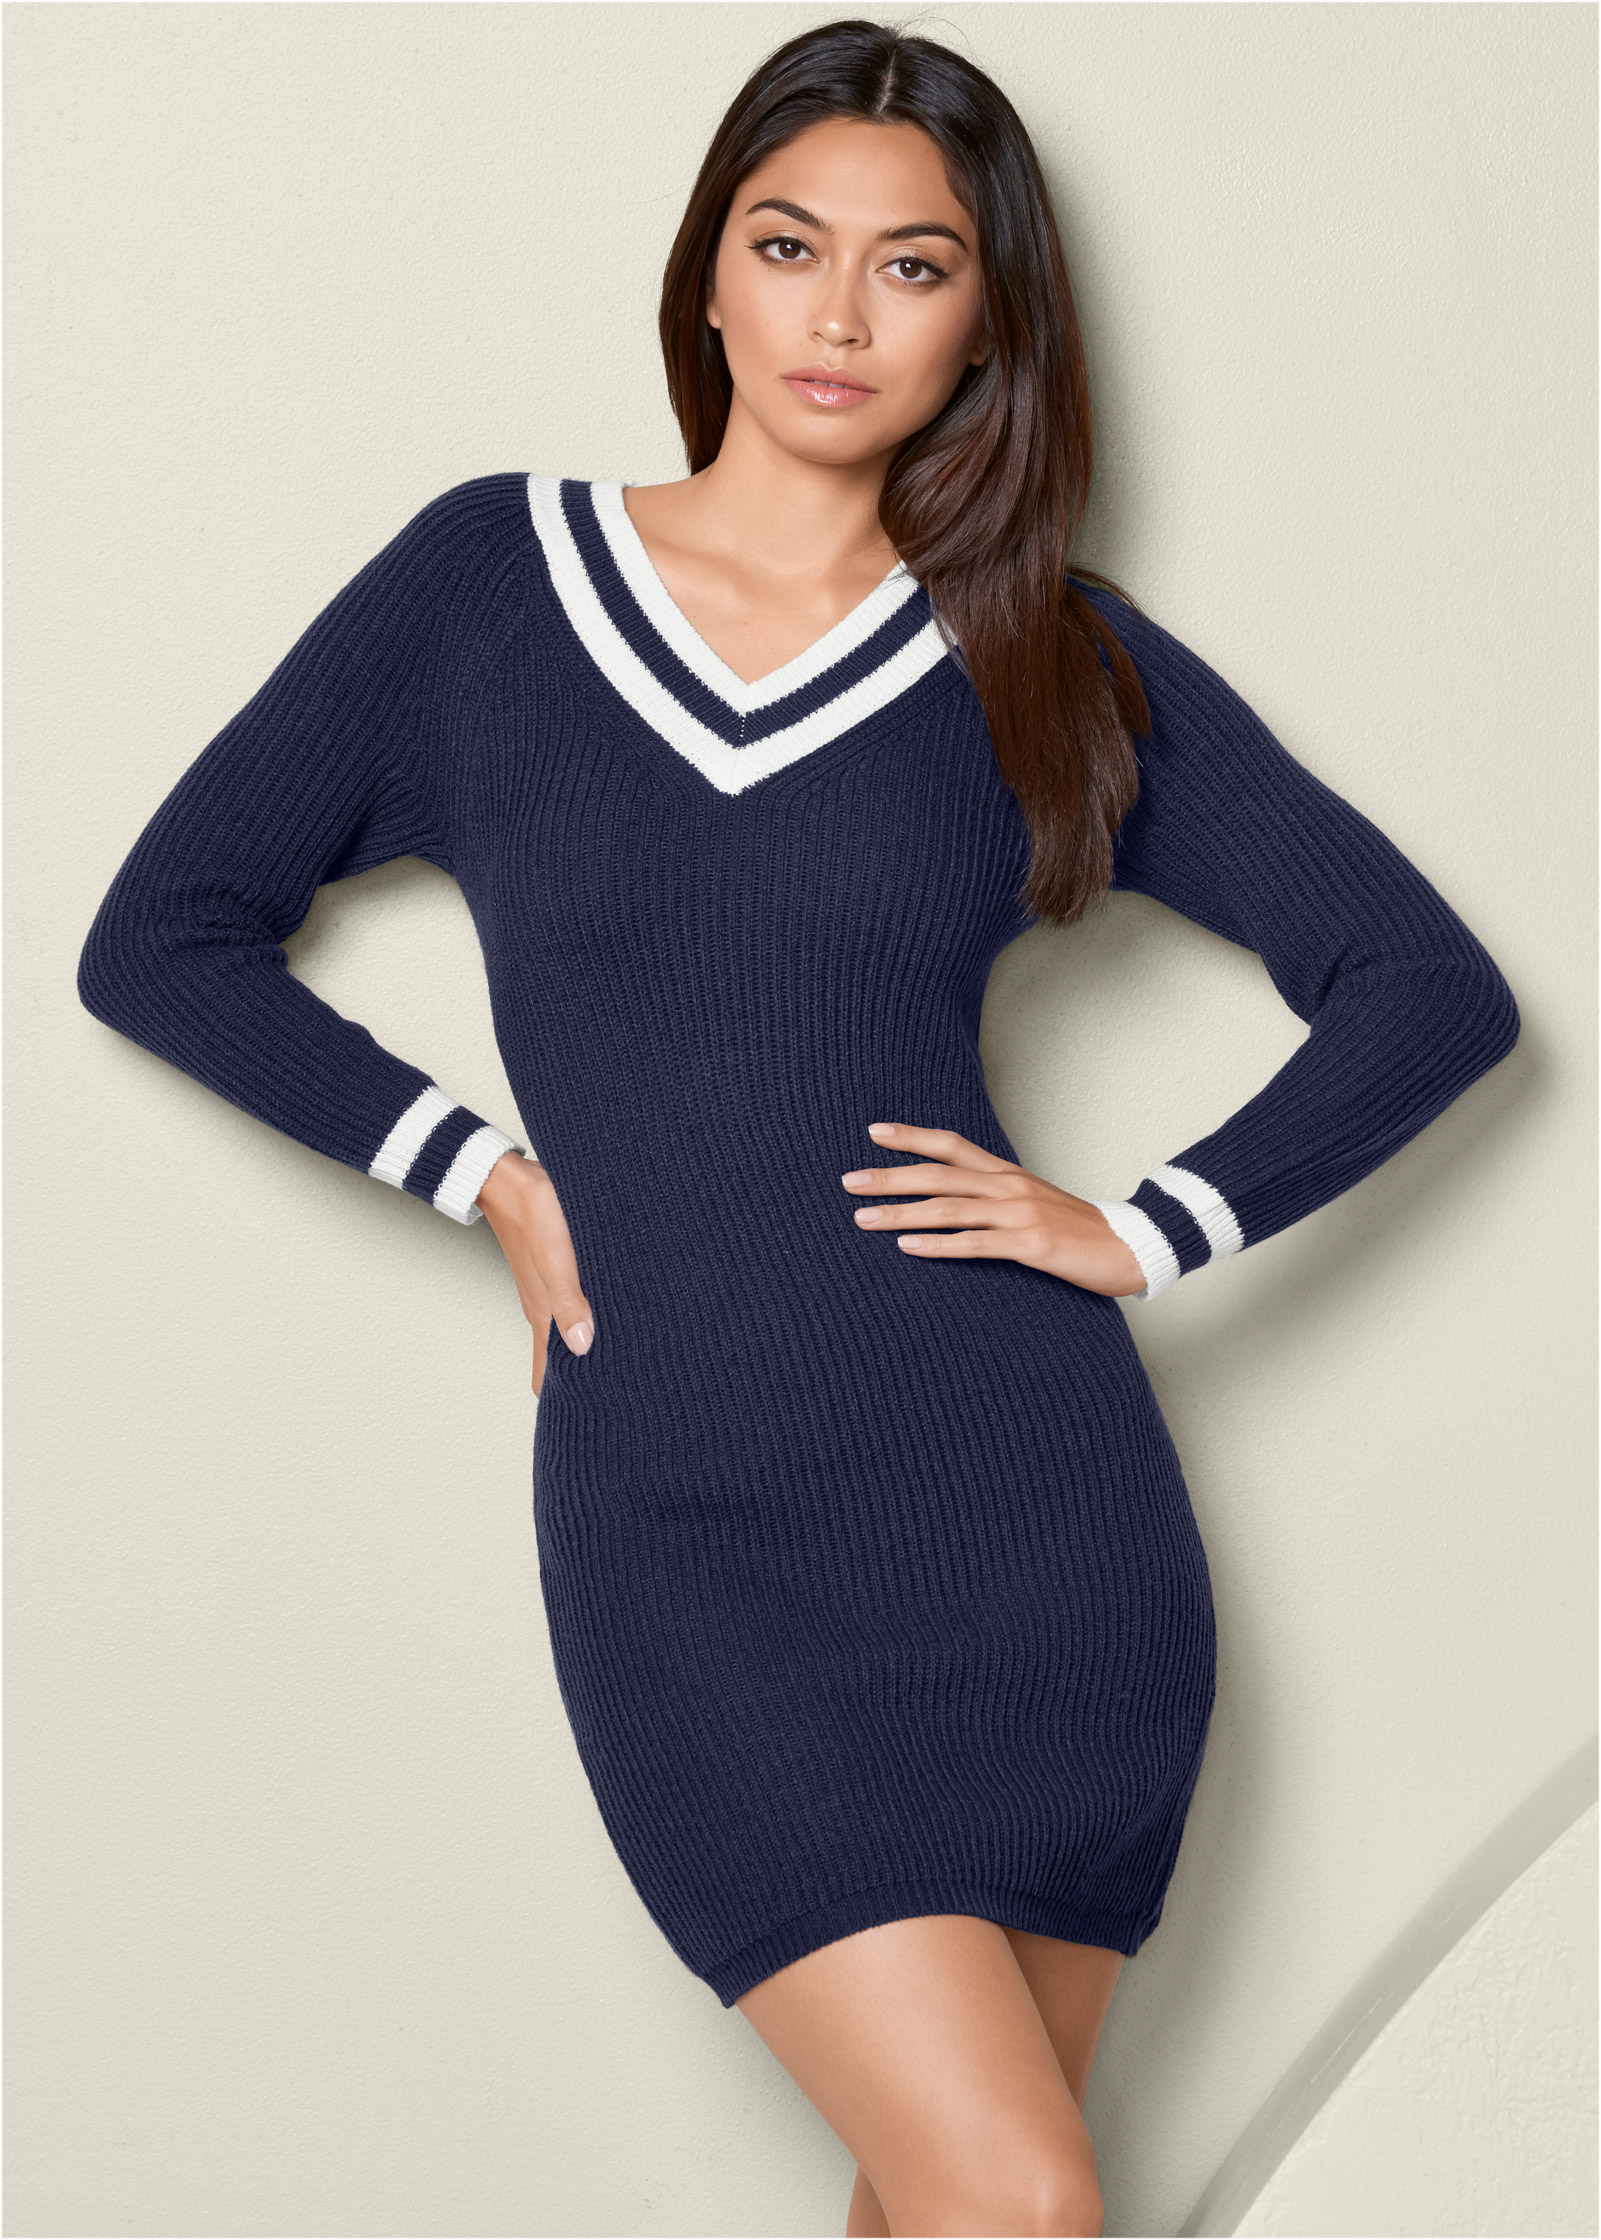 Sweater Dresses with Zippers